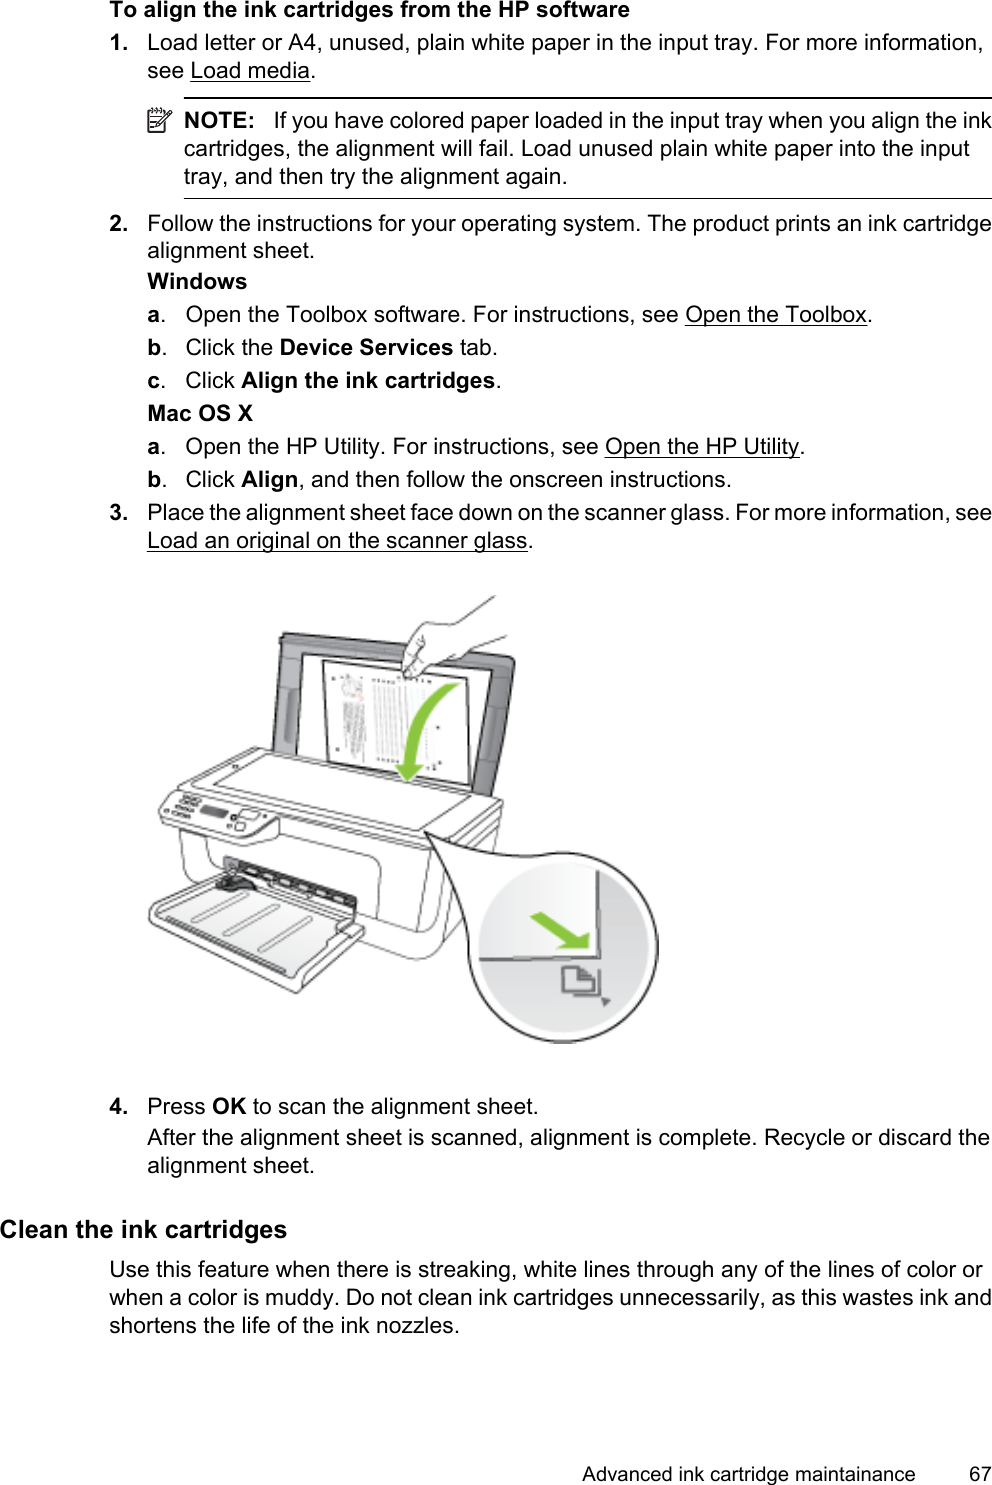 Hp Officejet 4500 Users Manual ManualsLib Makes It Easy To